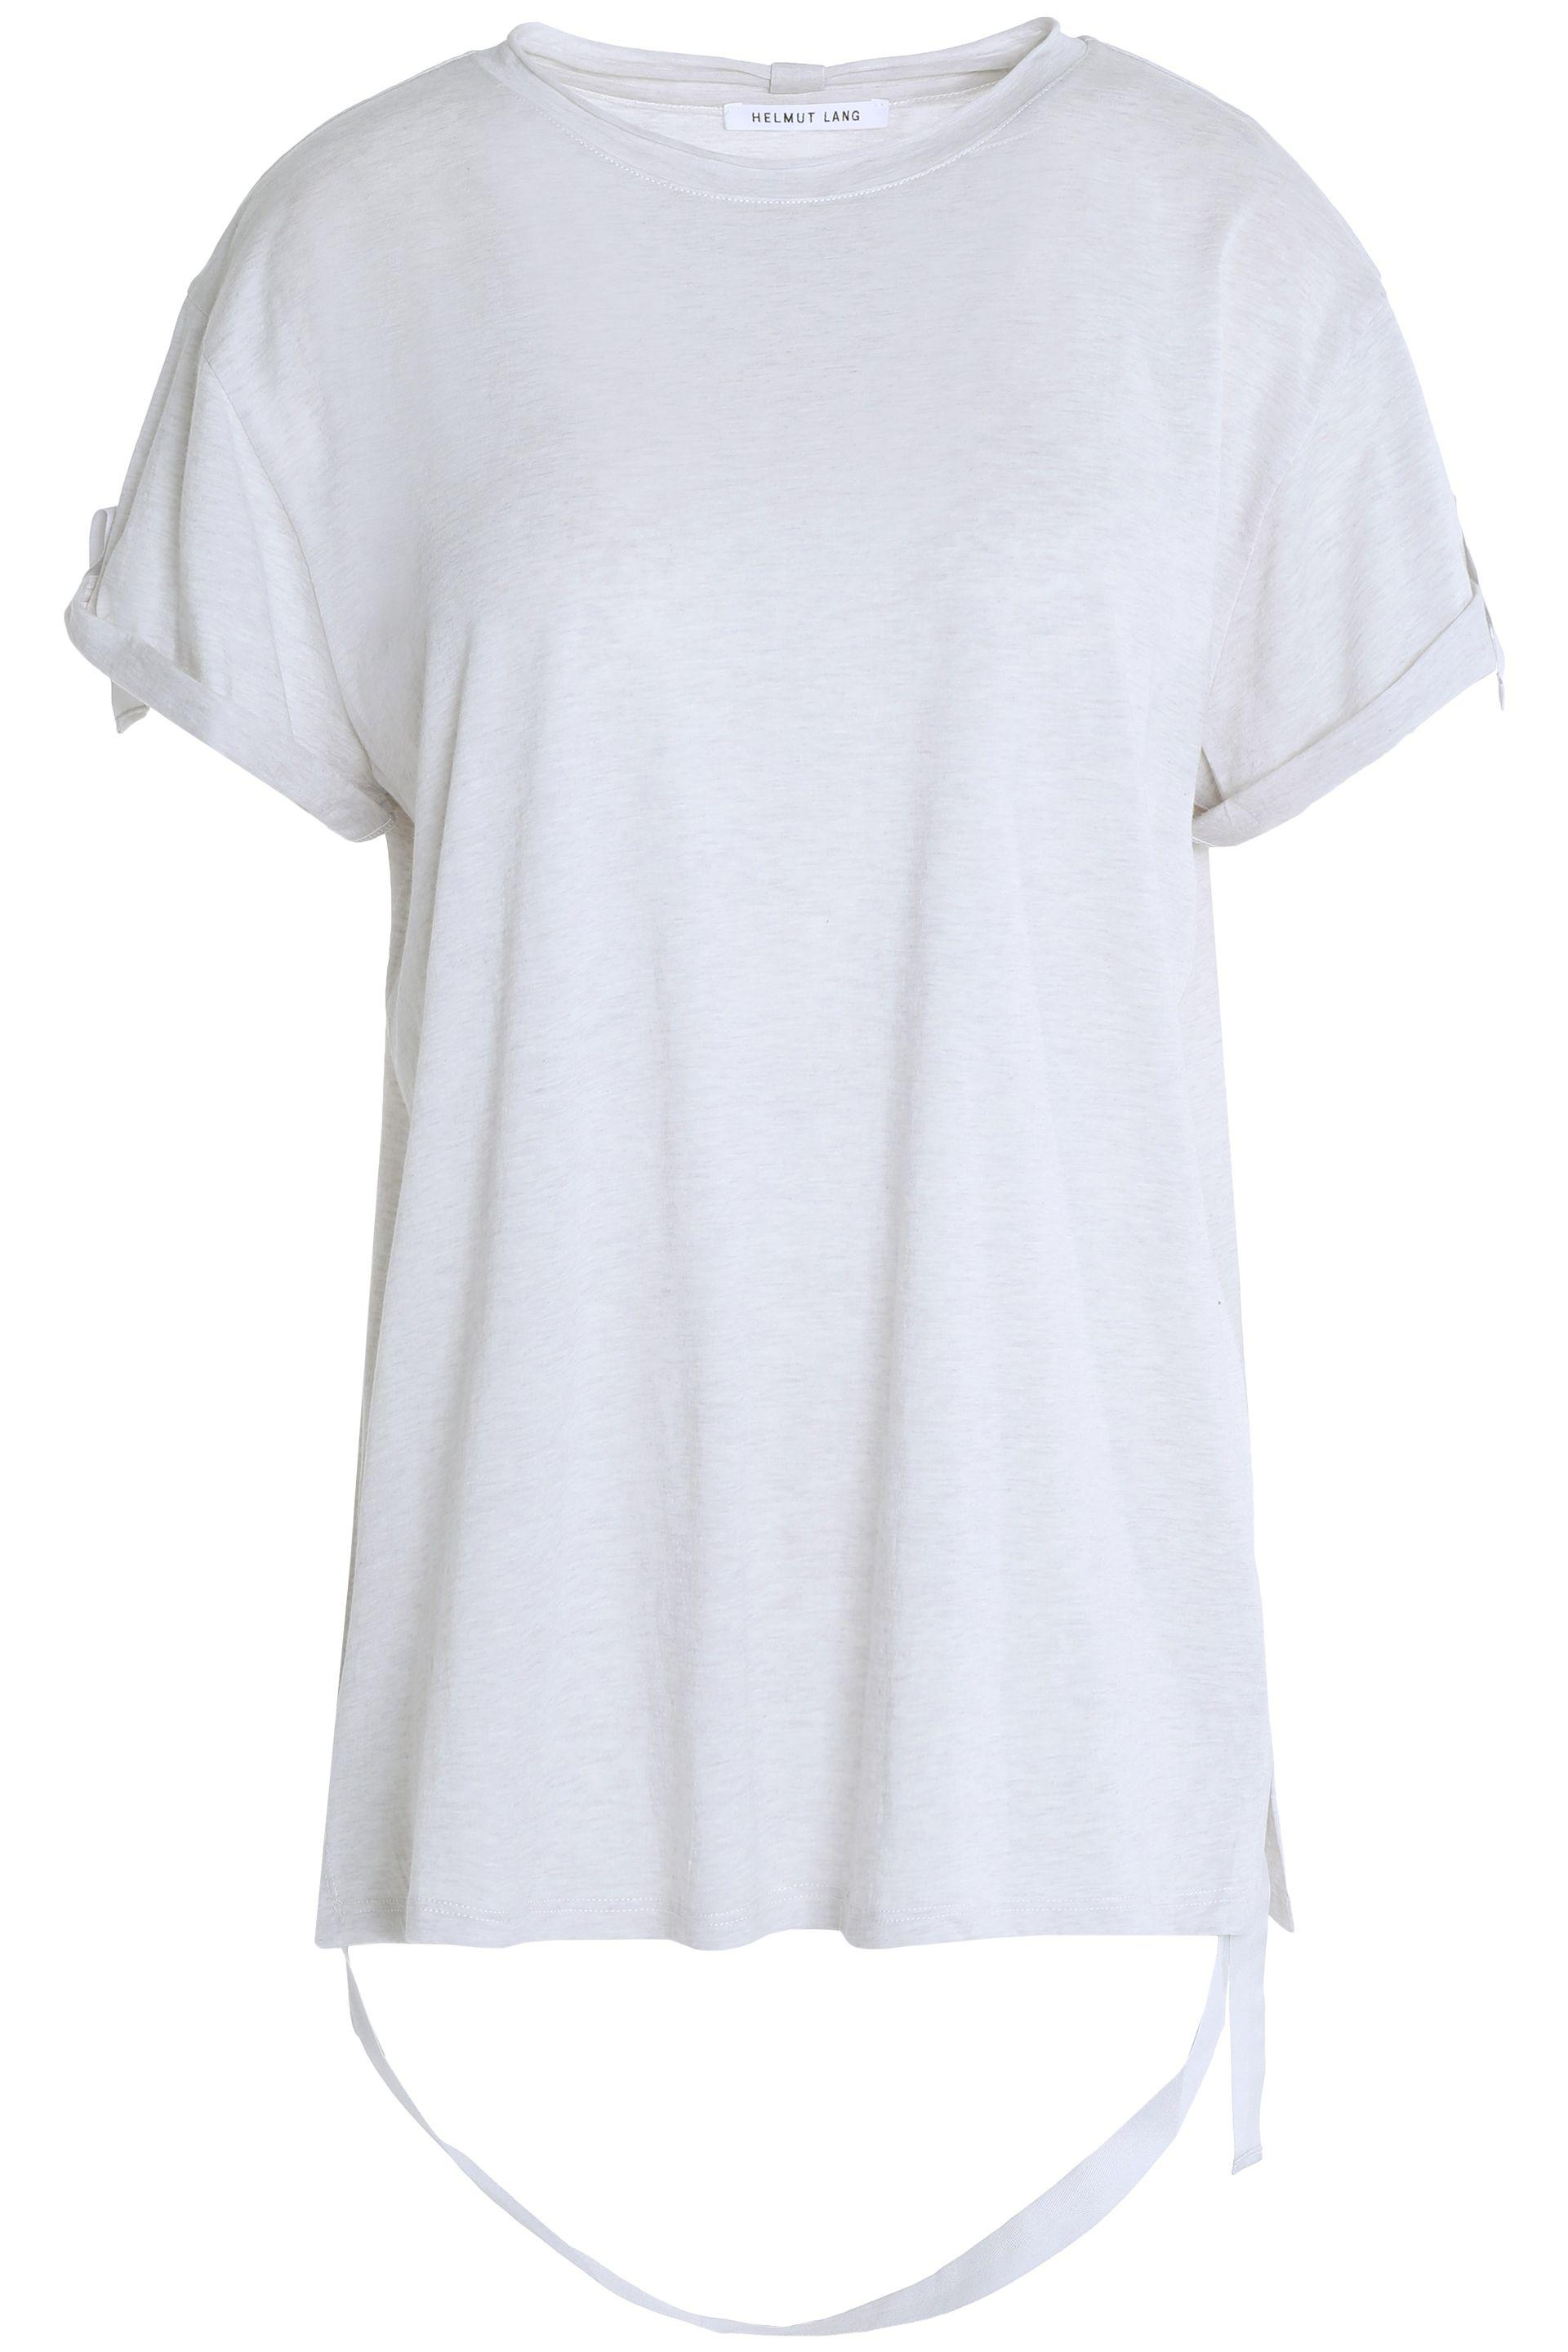 Outlet New Helmut Lang Woman Cotton And Cashmere-blend Jersey T-shirt Light Gray Size M Helmut Lang Sale Sneakernews For Sale Fake Discount Pick A Best io6cKSt